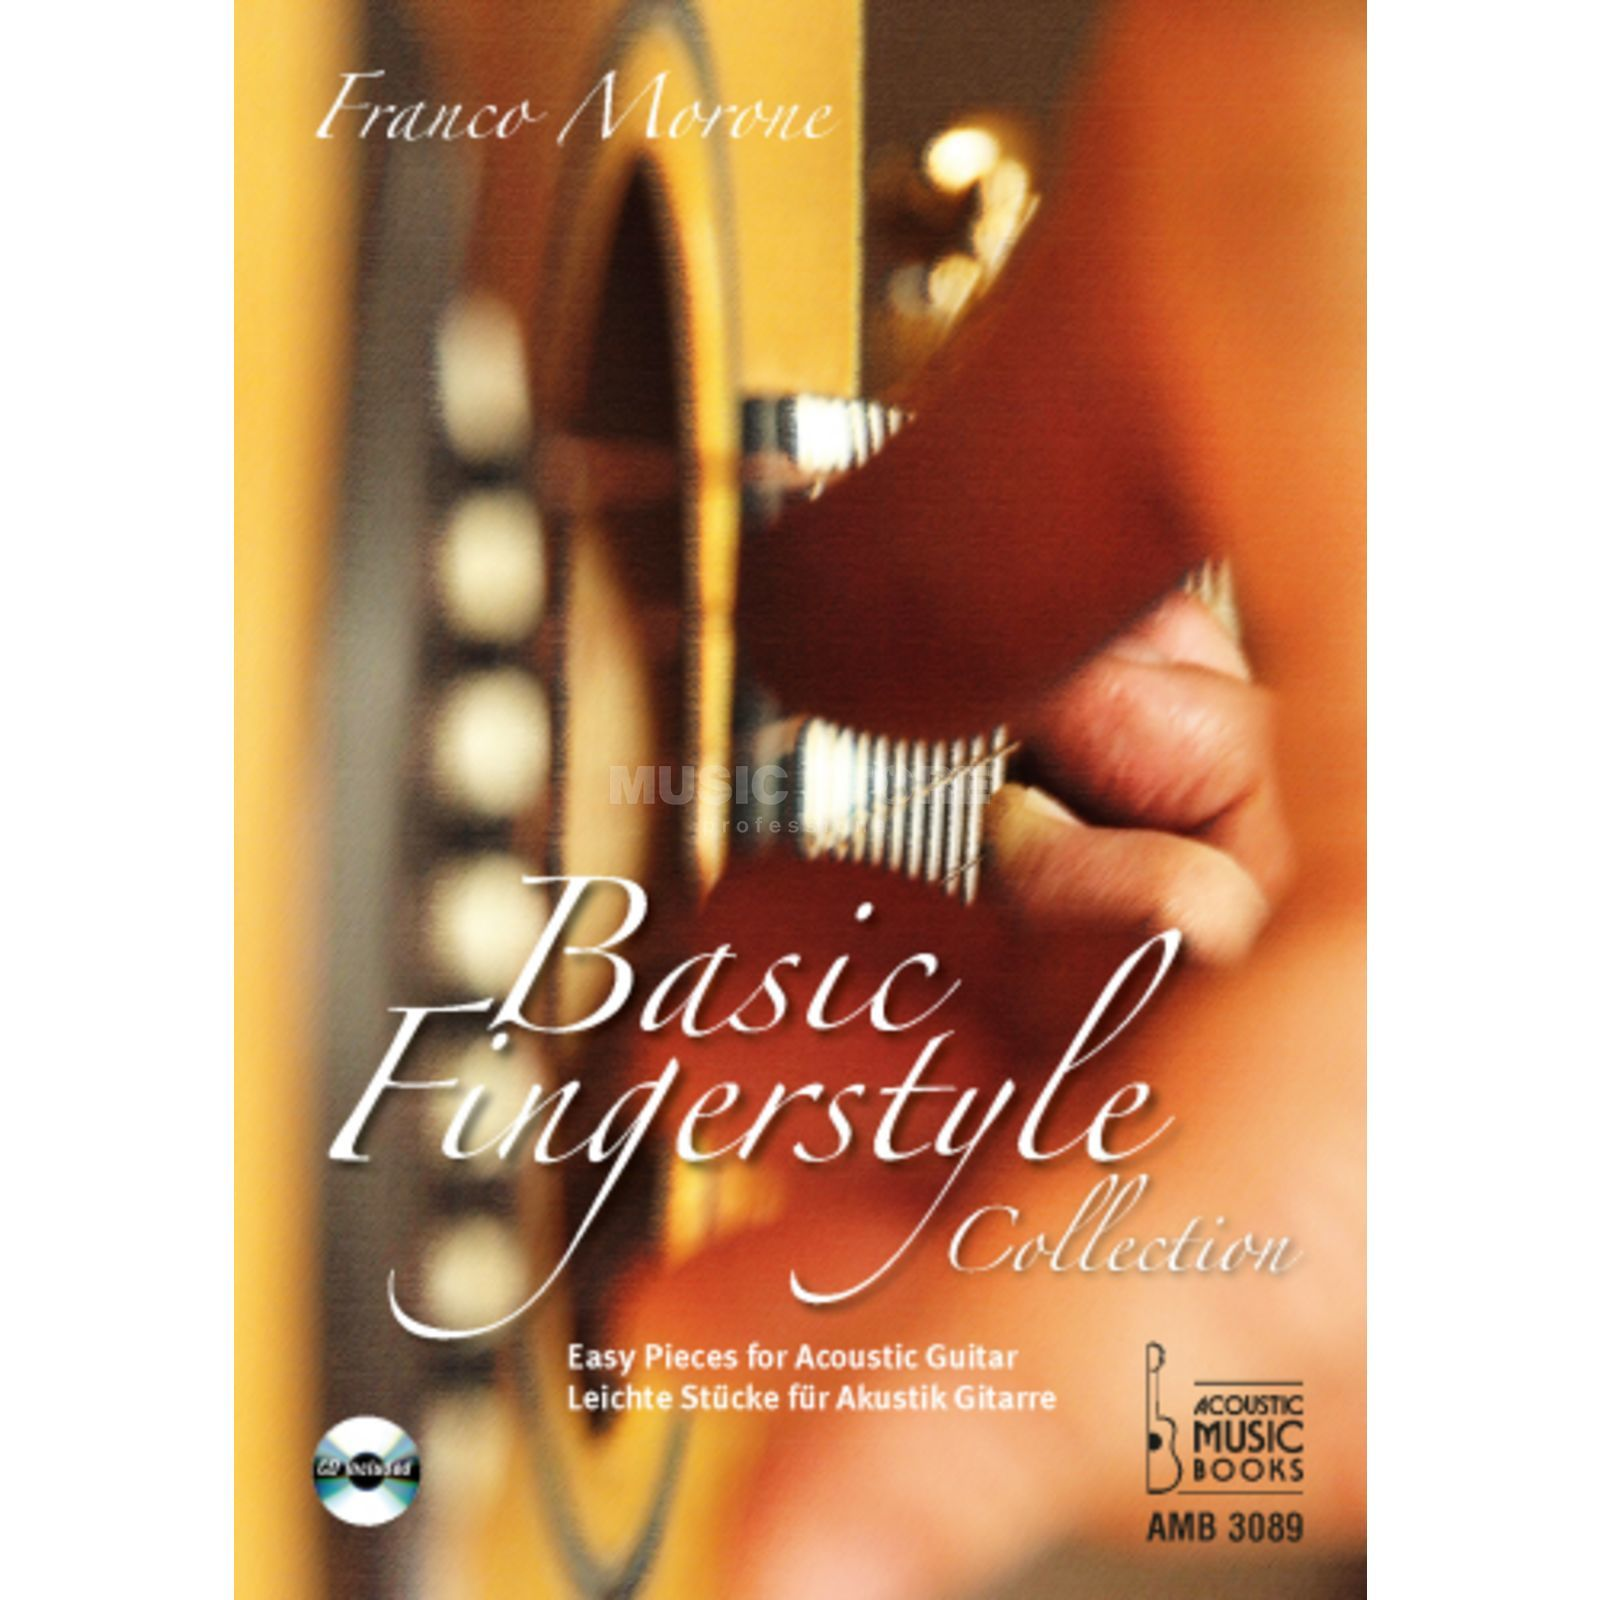 Acoustic Music Books Basic Fingerstyle Collection Franco Morone, Buch/CD Produktbild